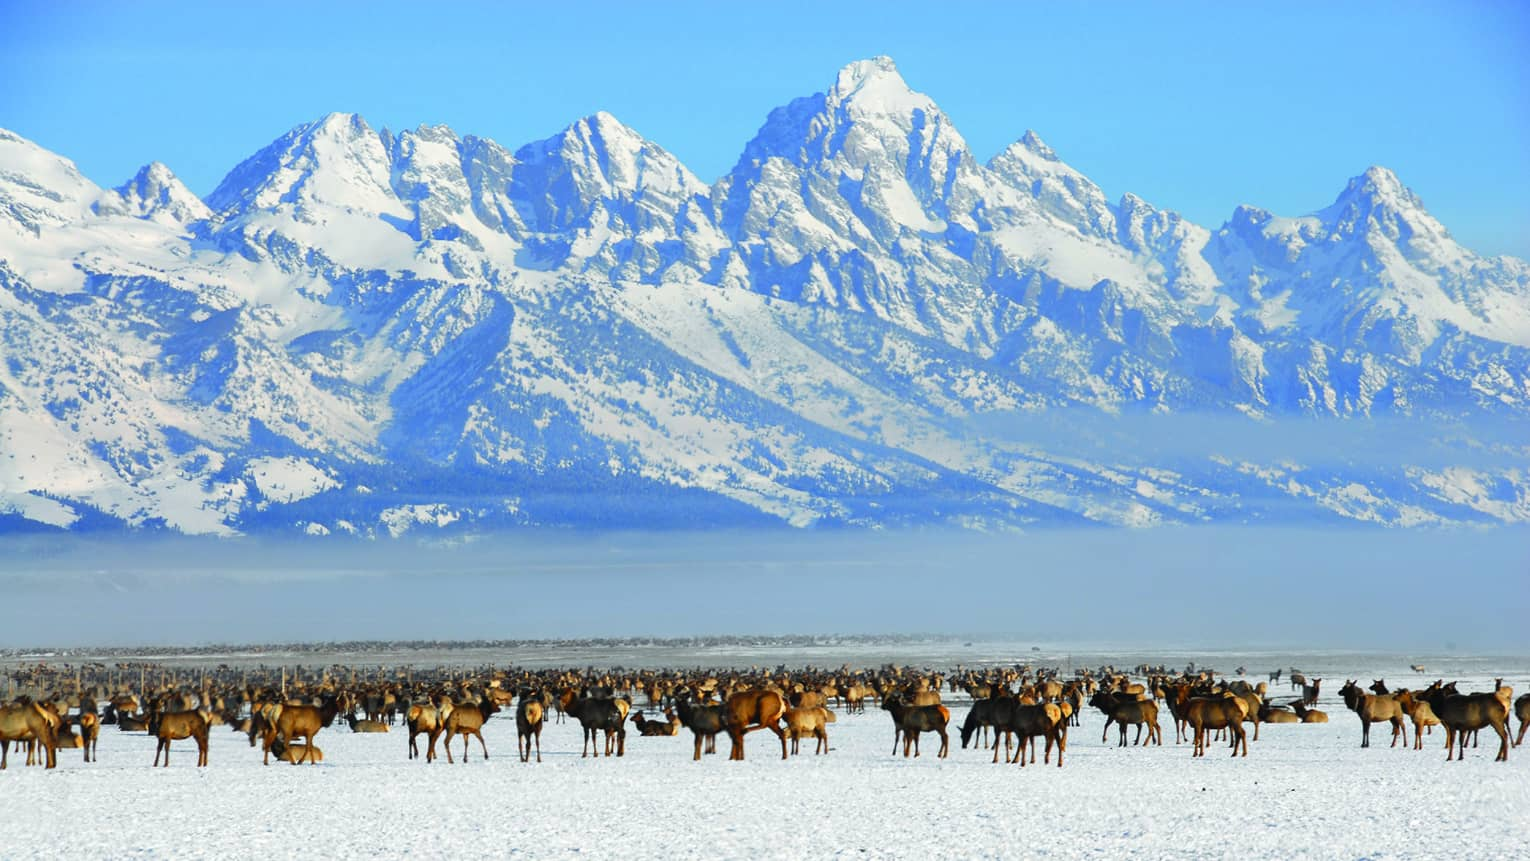 A herd of moose in front of snow covered mountains